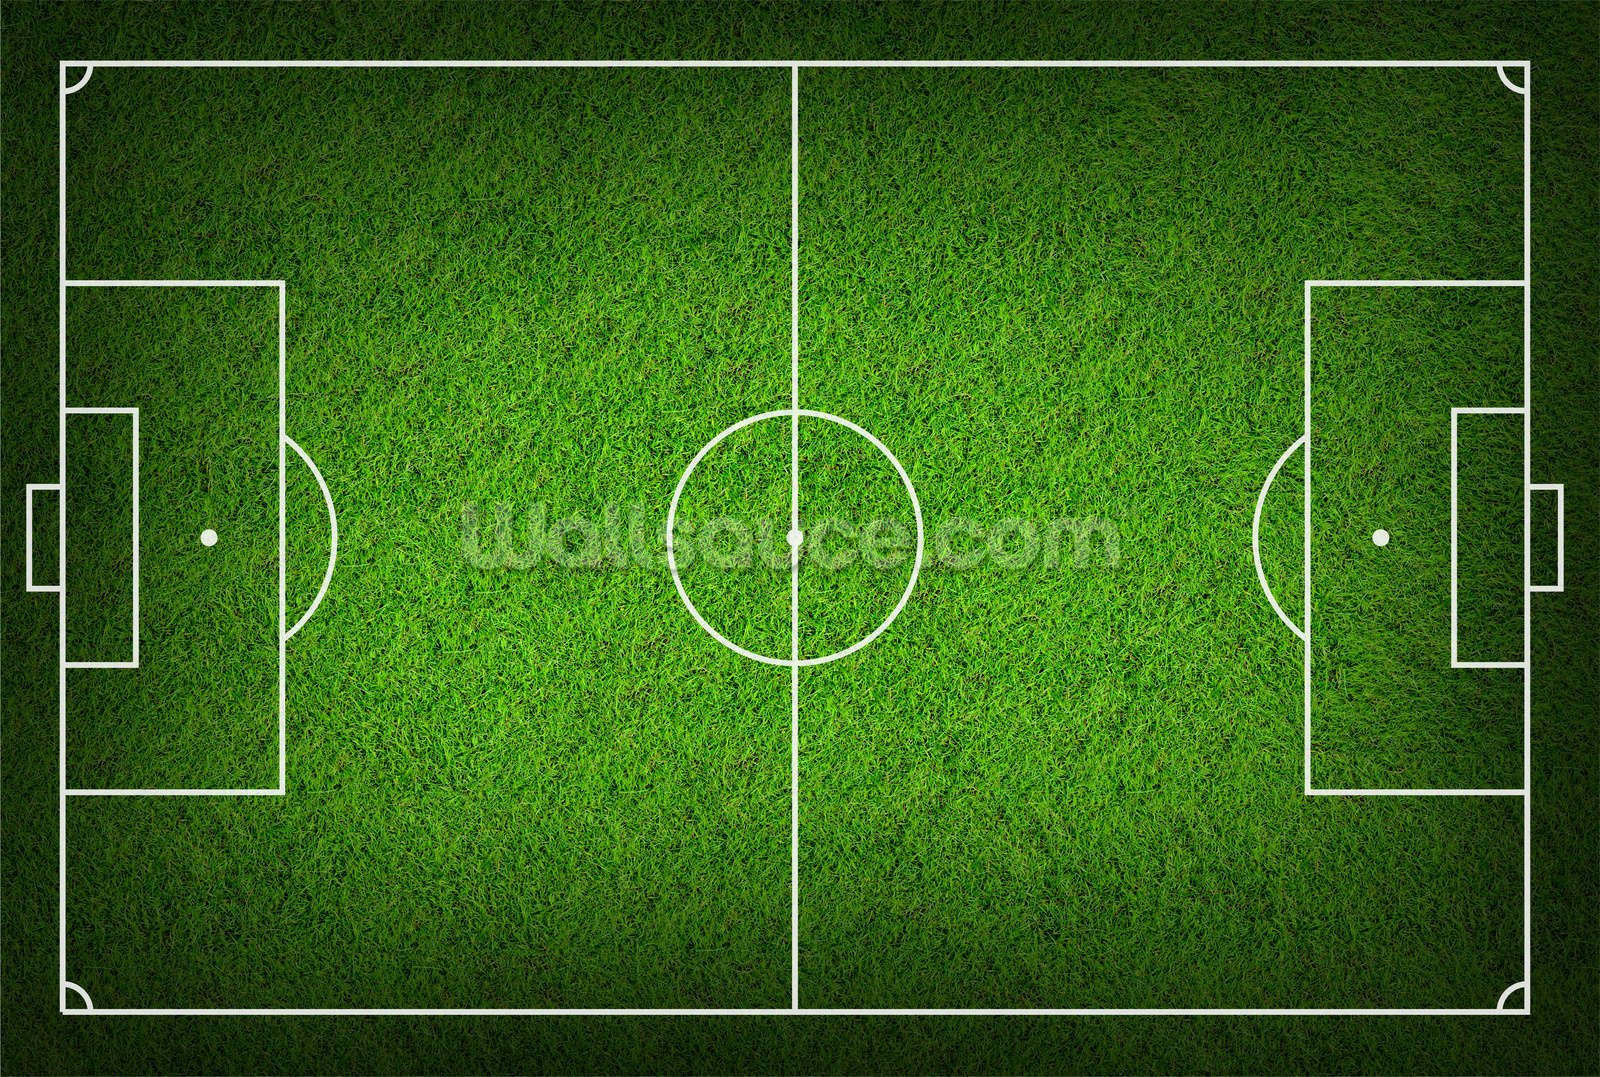 Soccer field wall mural wallsauce usa football pitch wall mural photo wallpaper amipublicfo Images